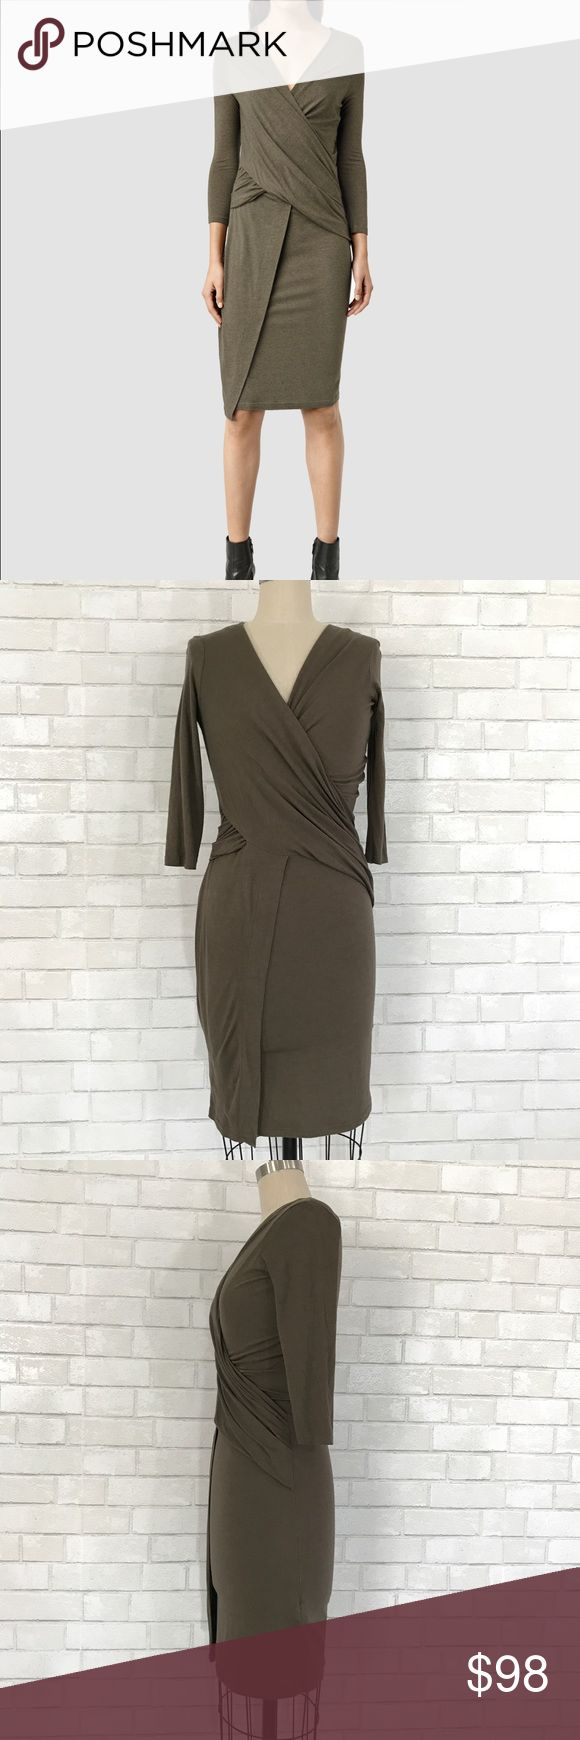 All Saints Adria Dress size M All Saints Adria Dress USA in green  Ⓜ️size M Ⓜ️Bust 36-40 Ⓜ️Waist 28- 32 Ⓜ️sleeves 18 Ⓜ️Length 42  Faux strap 3/4 sleeve dress by all saints, wrap twist at waist, light jersey 70% viscous 30% wool. Stunning body forming dress, new no tags.   ✅bundle  ✅🚭 ✅REASONABLE offers will be considered 👍🏼 🚫No Trading 🙅🏻 Poshmark rules only‼️ All Saints Dresses Midi